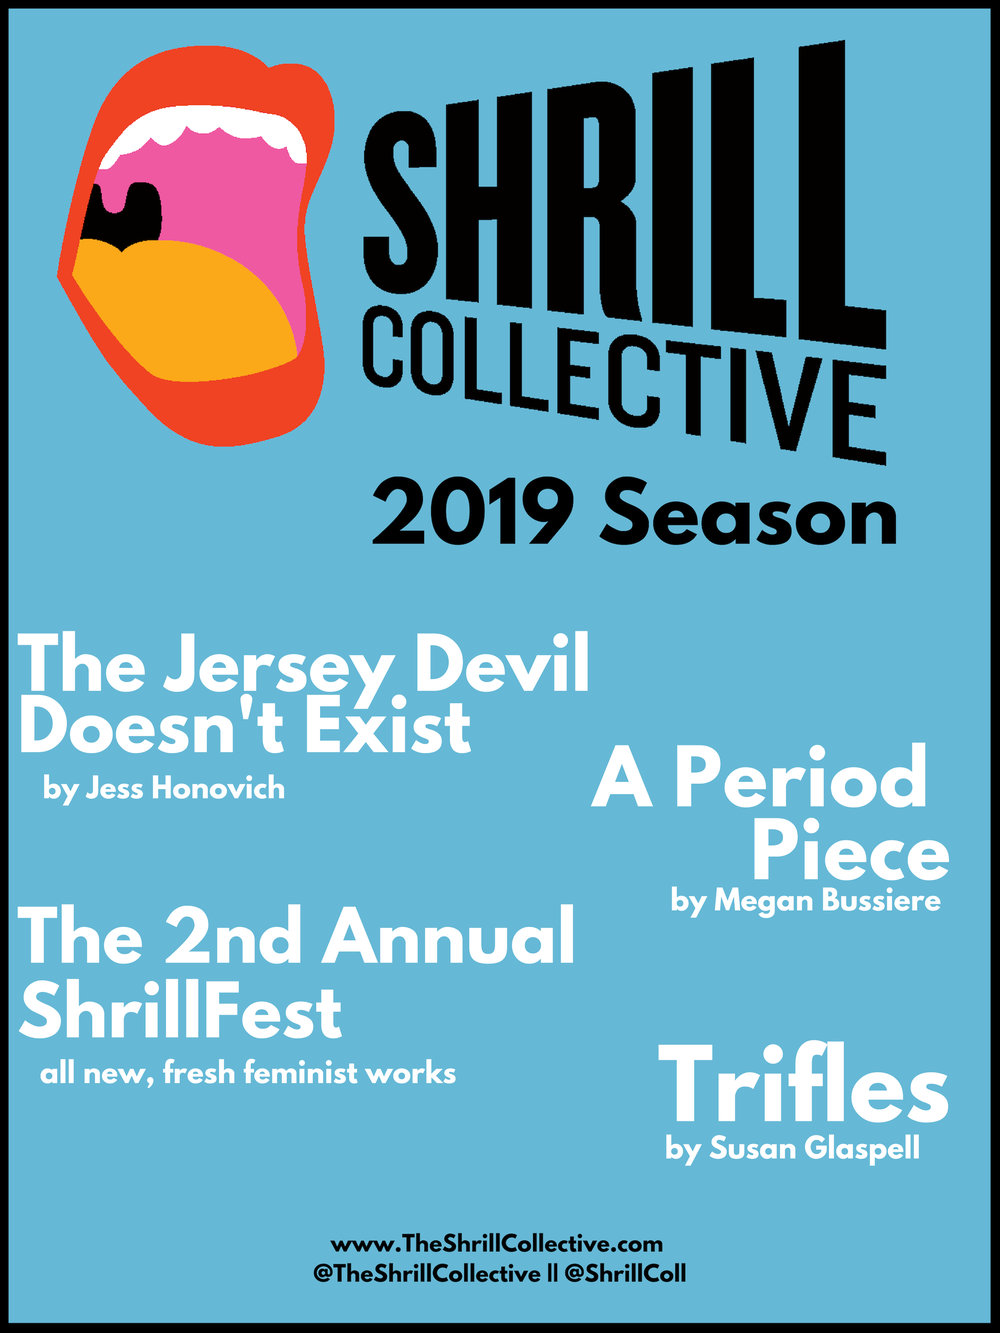 The Shrill collective 2019 season.jpg